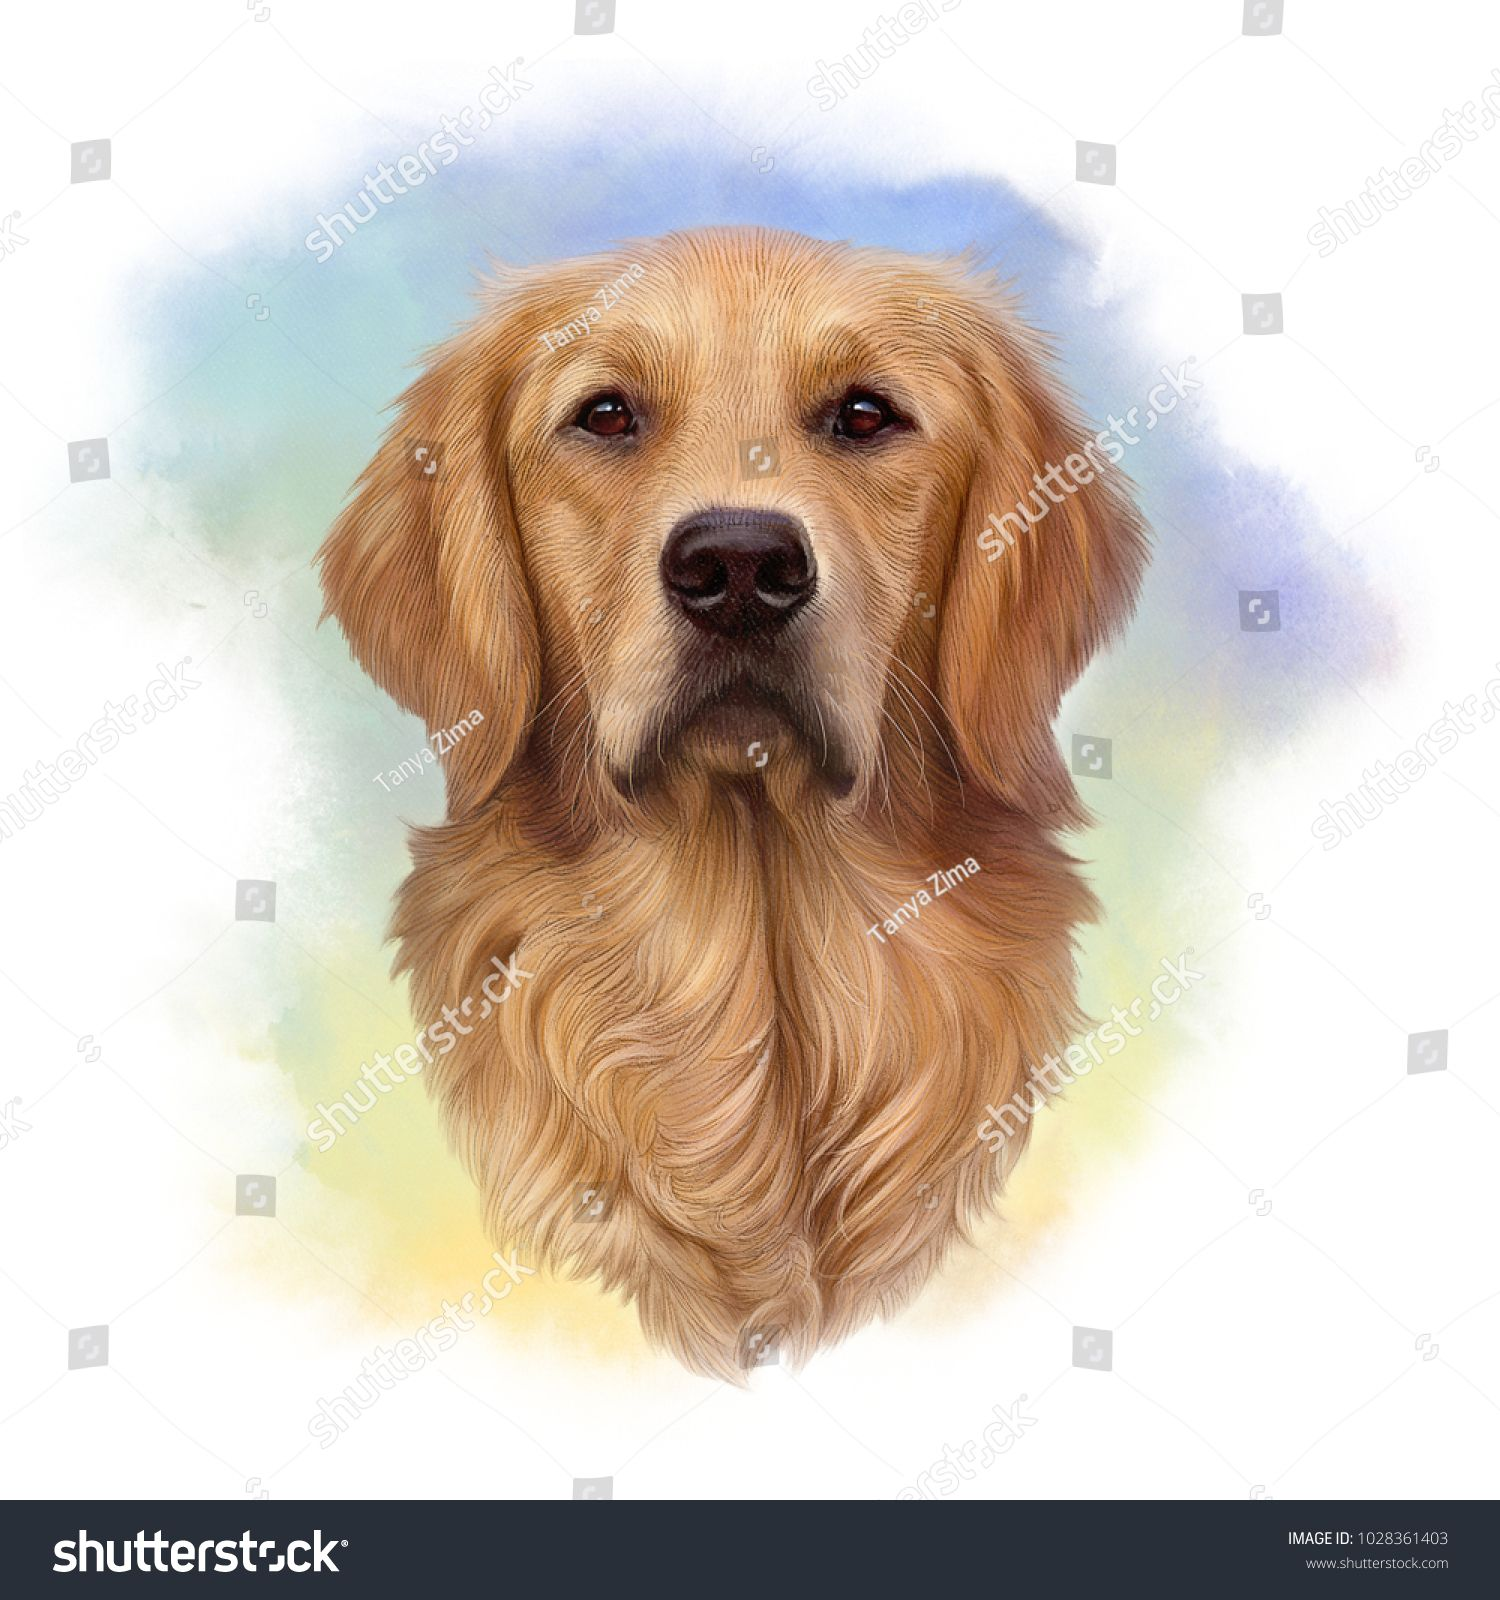 Illustration Of A Golden Retriever Guide Dog A Disability